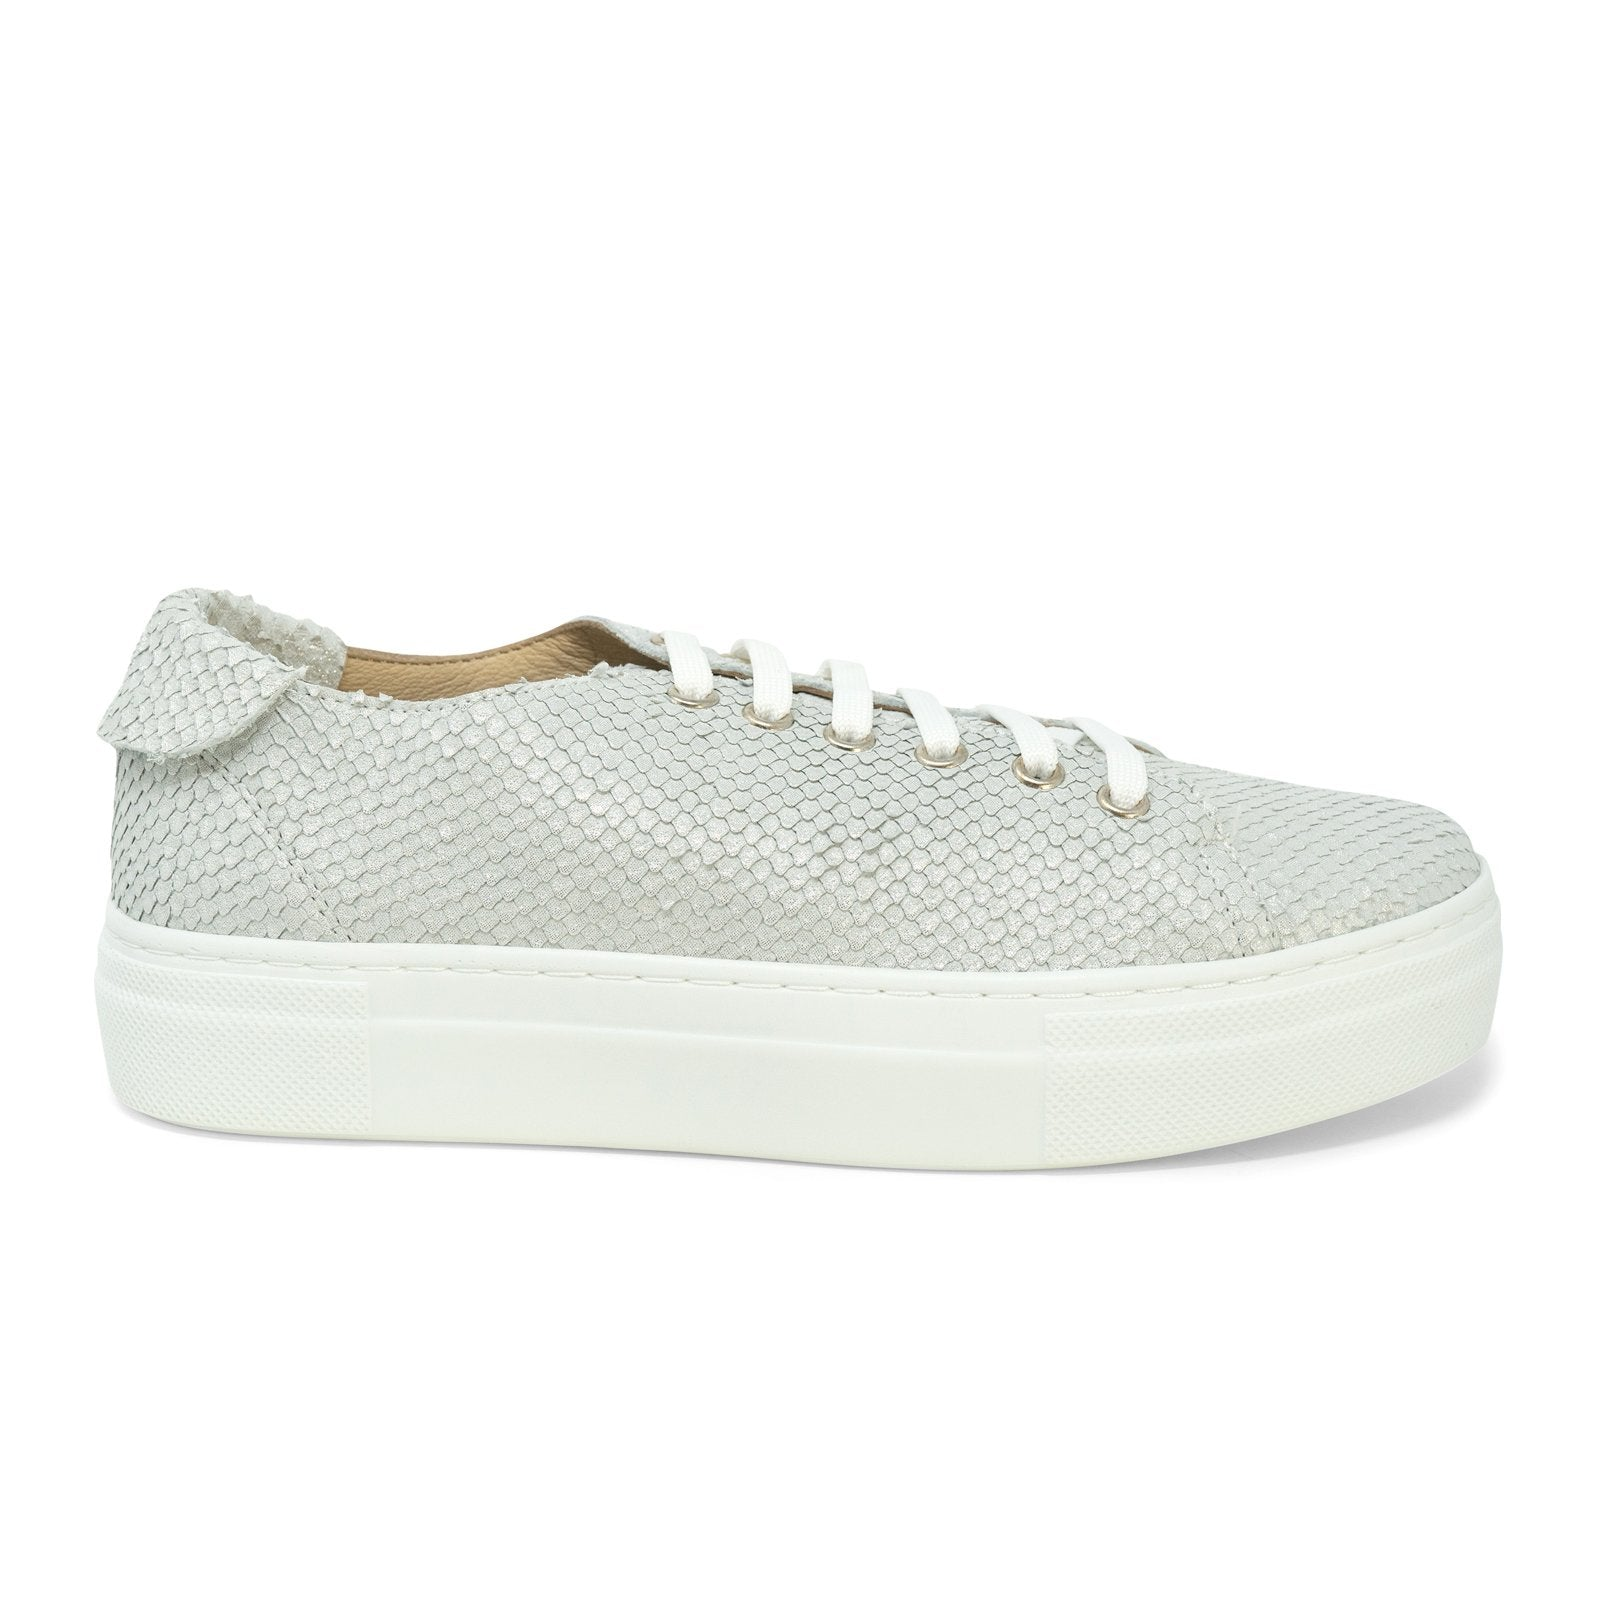 Women Python Print Leather Sneakers in Casper White - Jennifer Tattanelli